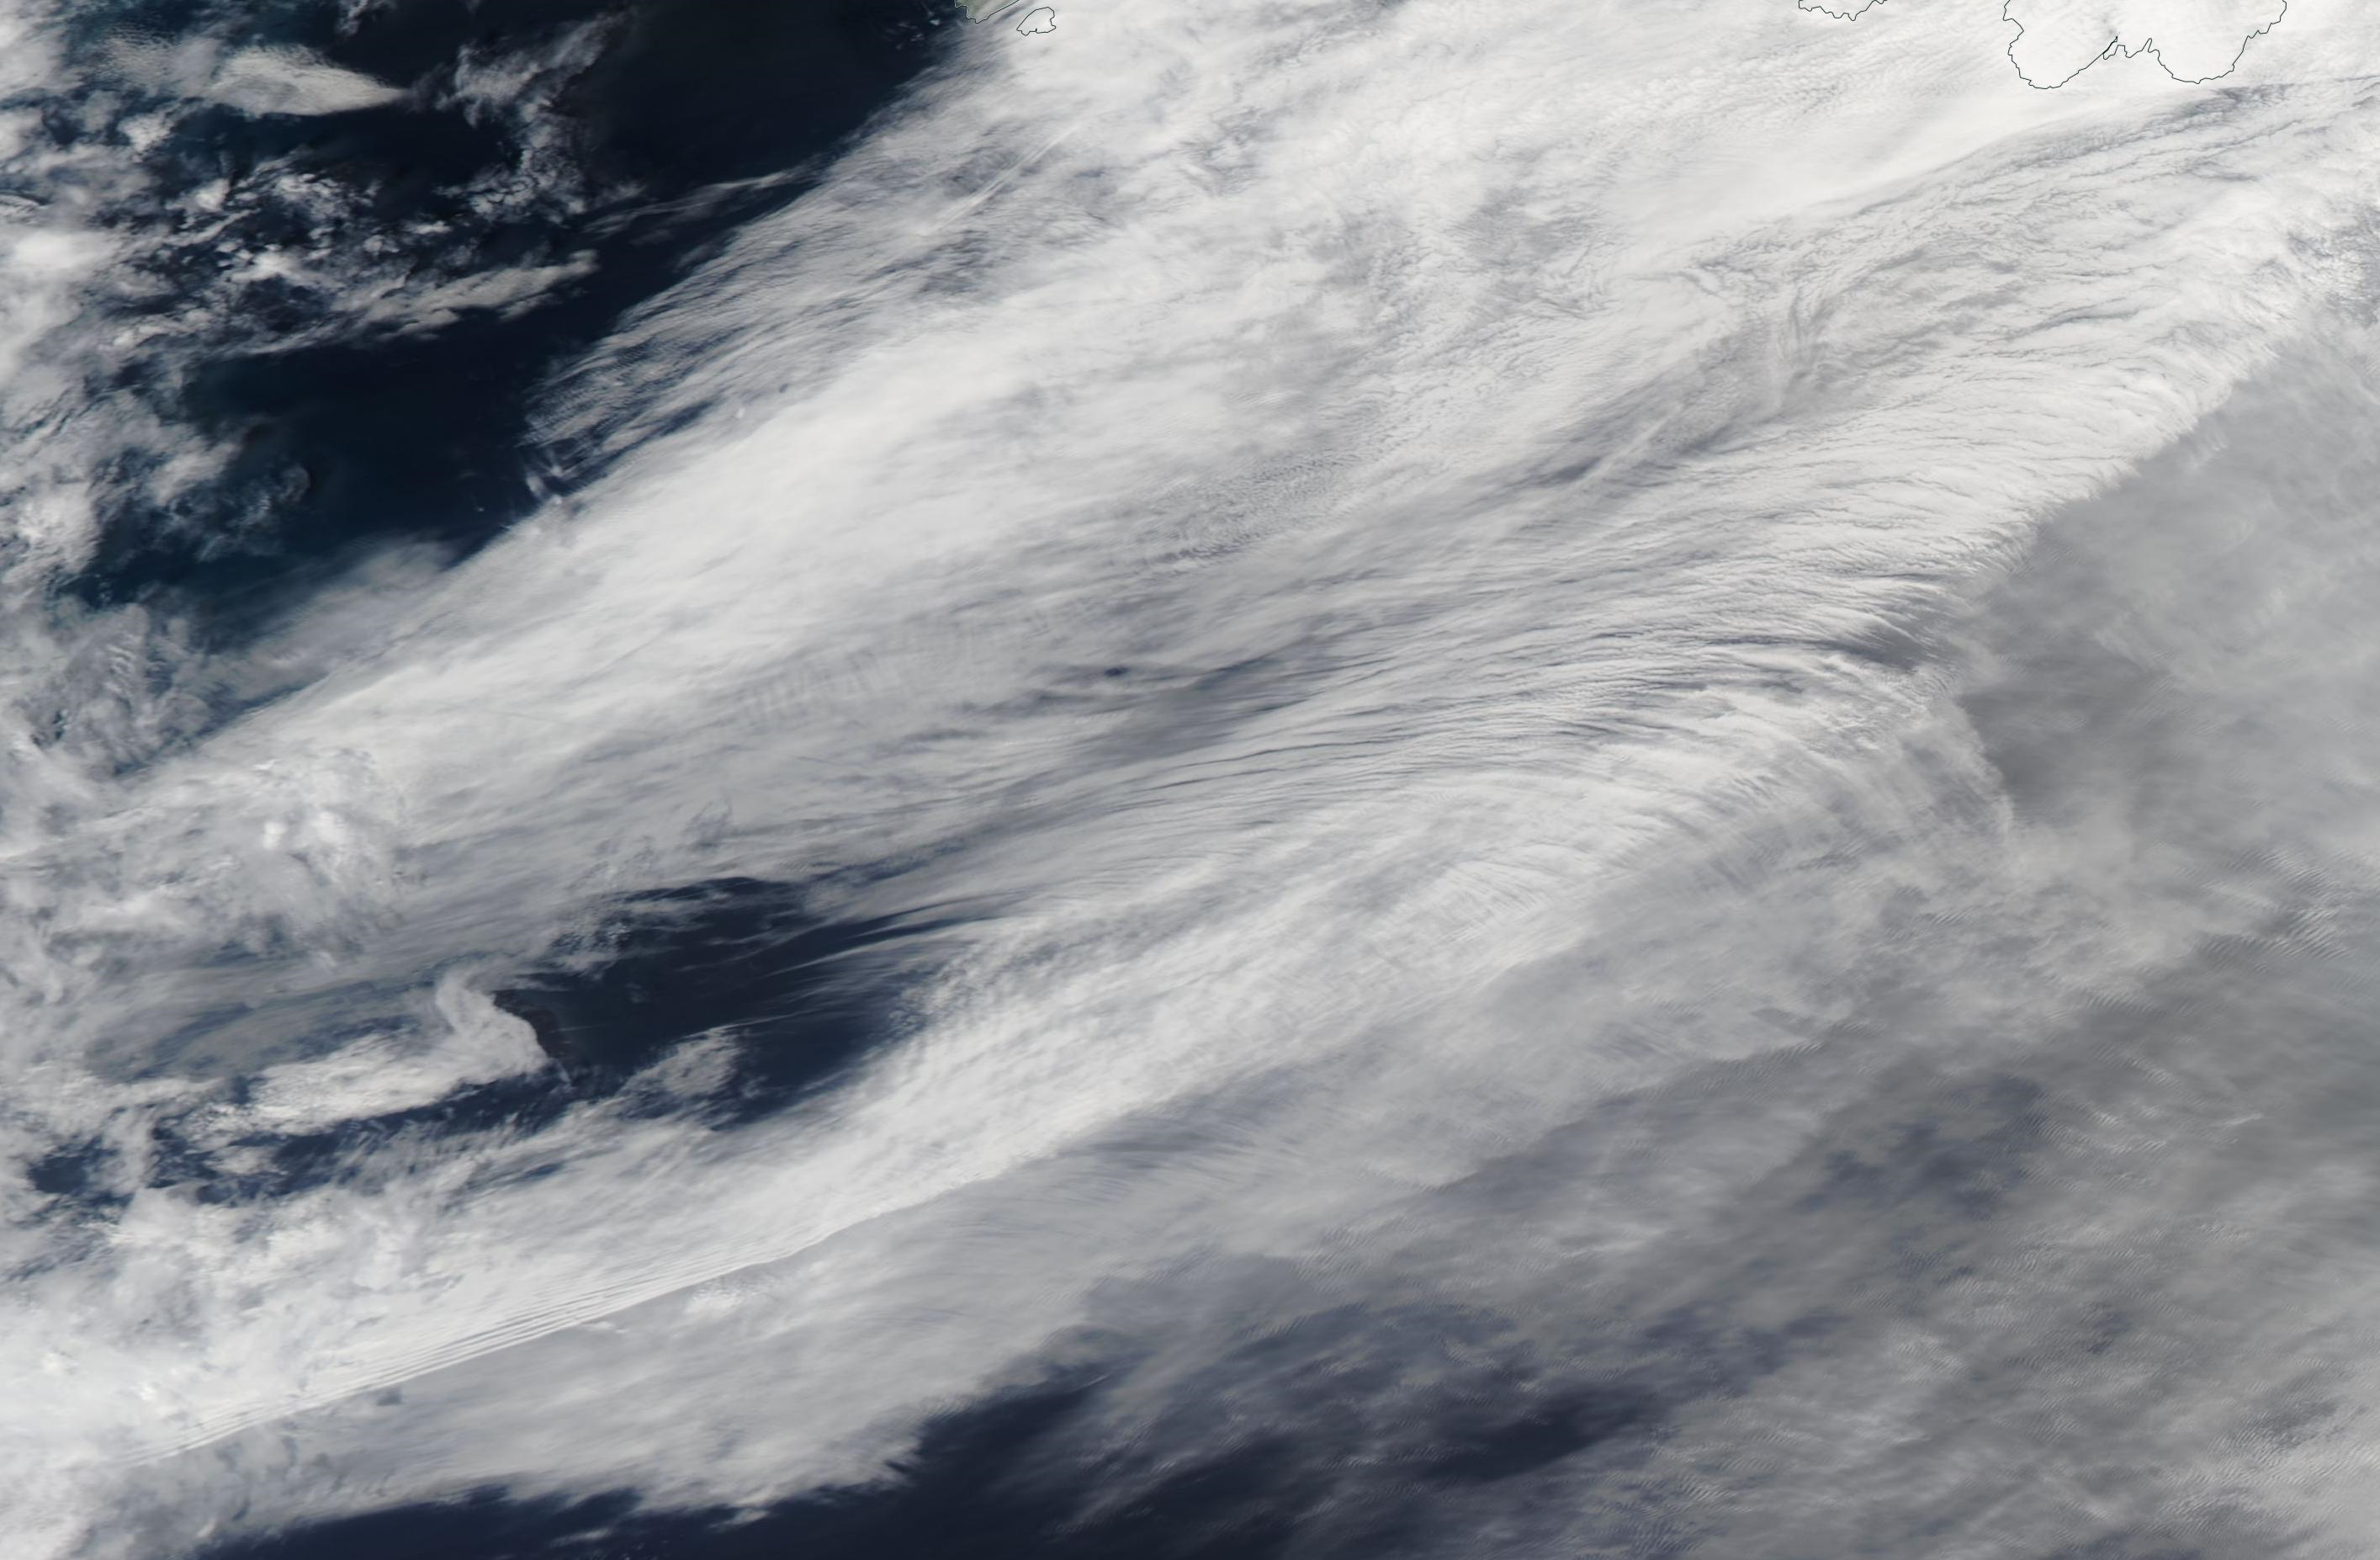 Western Atlantic suspected chemtrail geoengineering 24 July 2019 https://go.nasa.gov/2ybfzMY